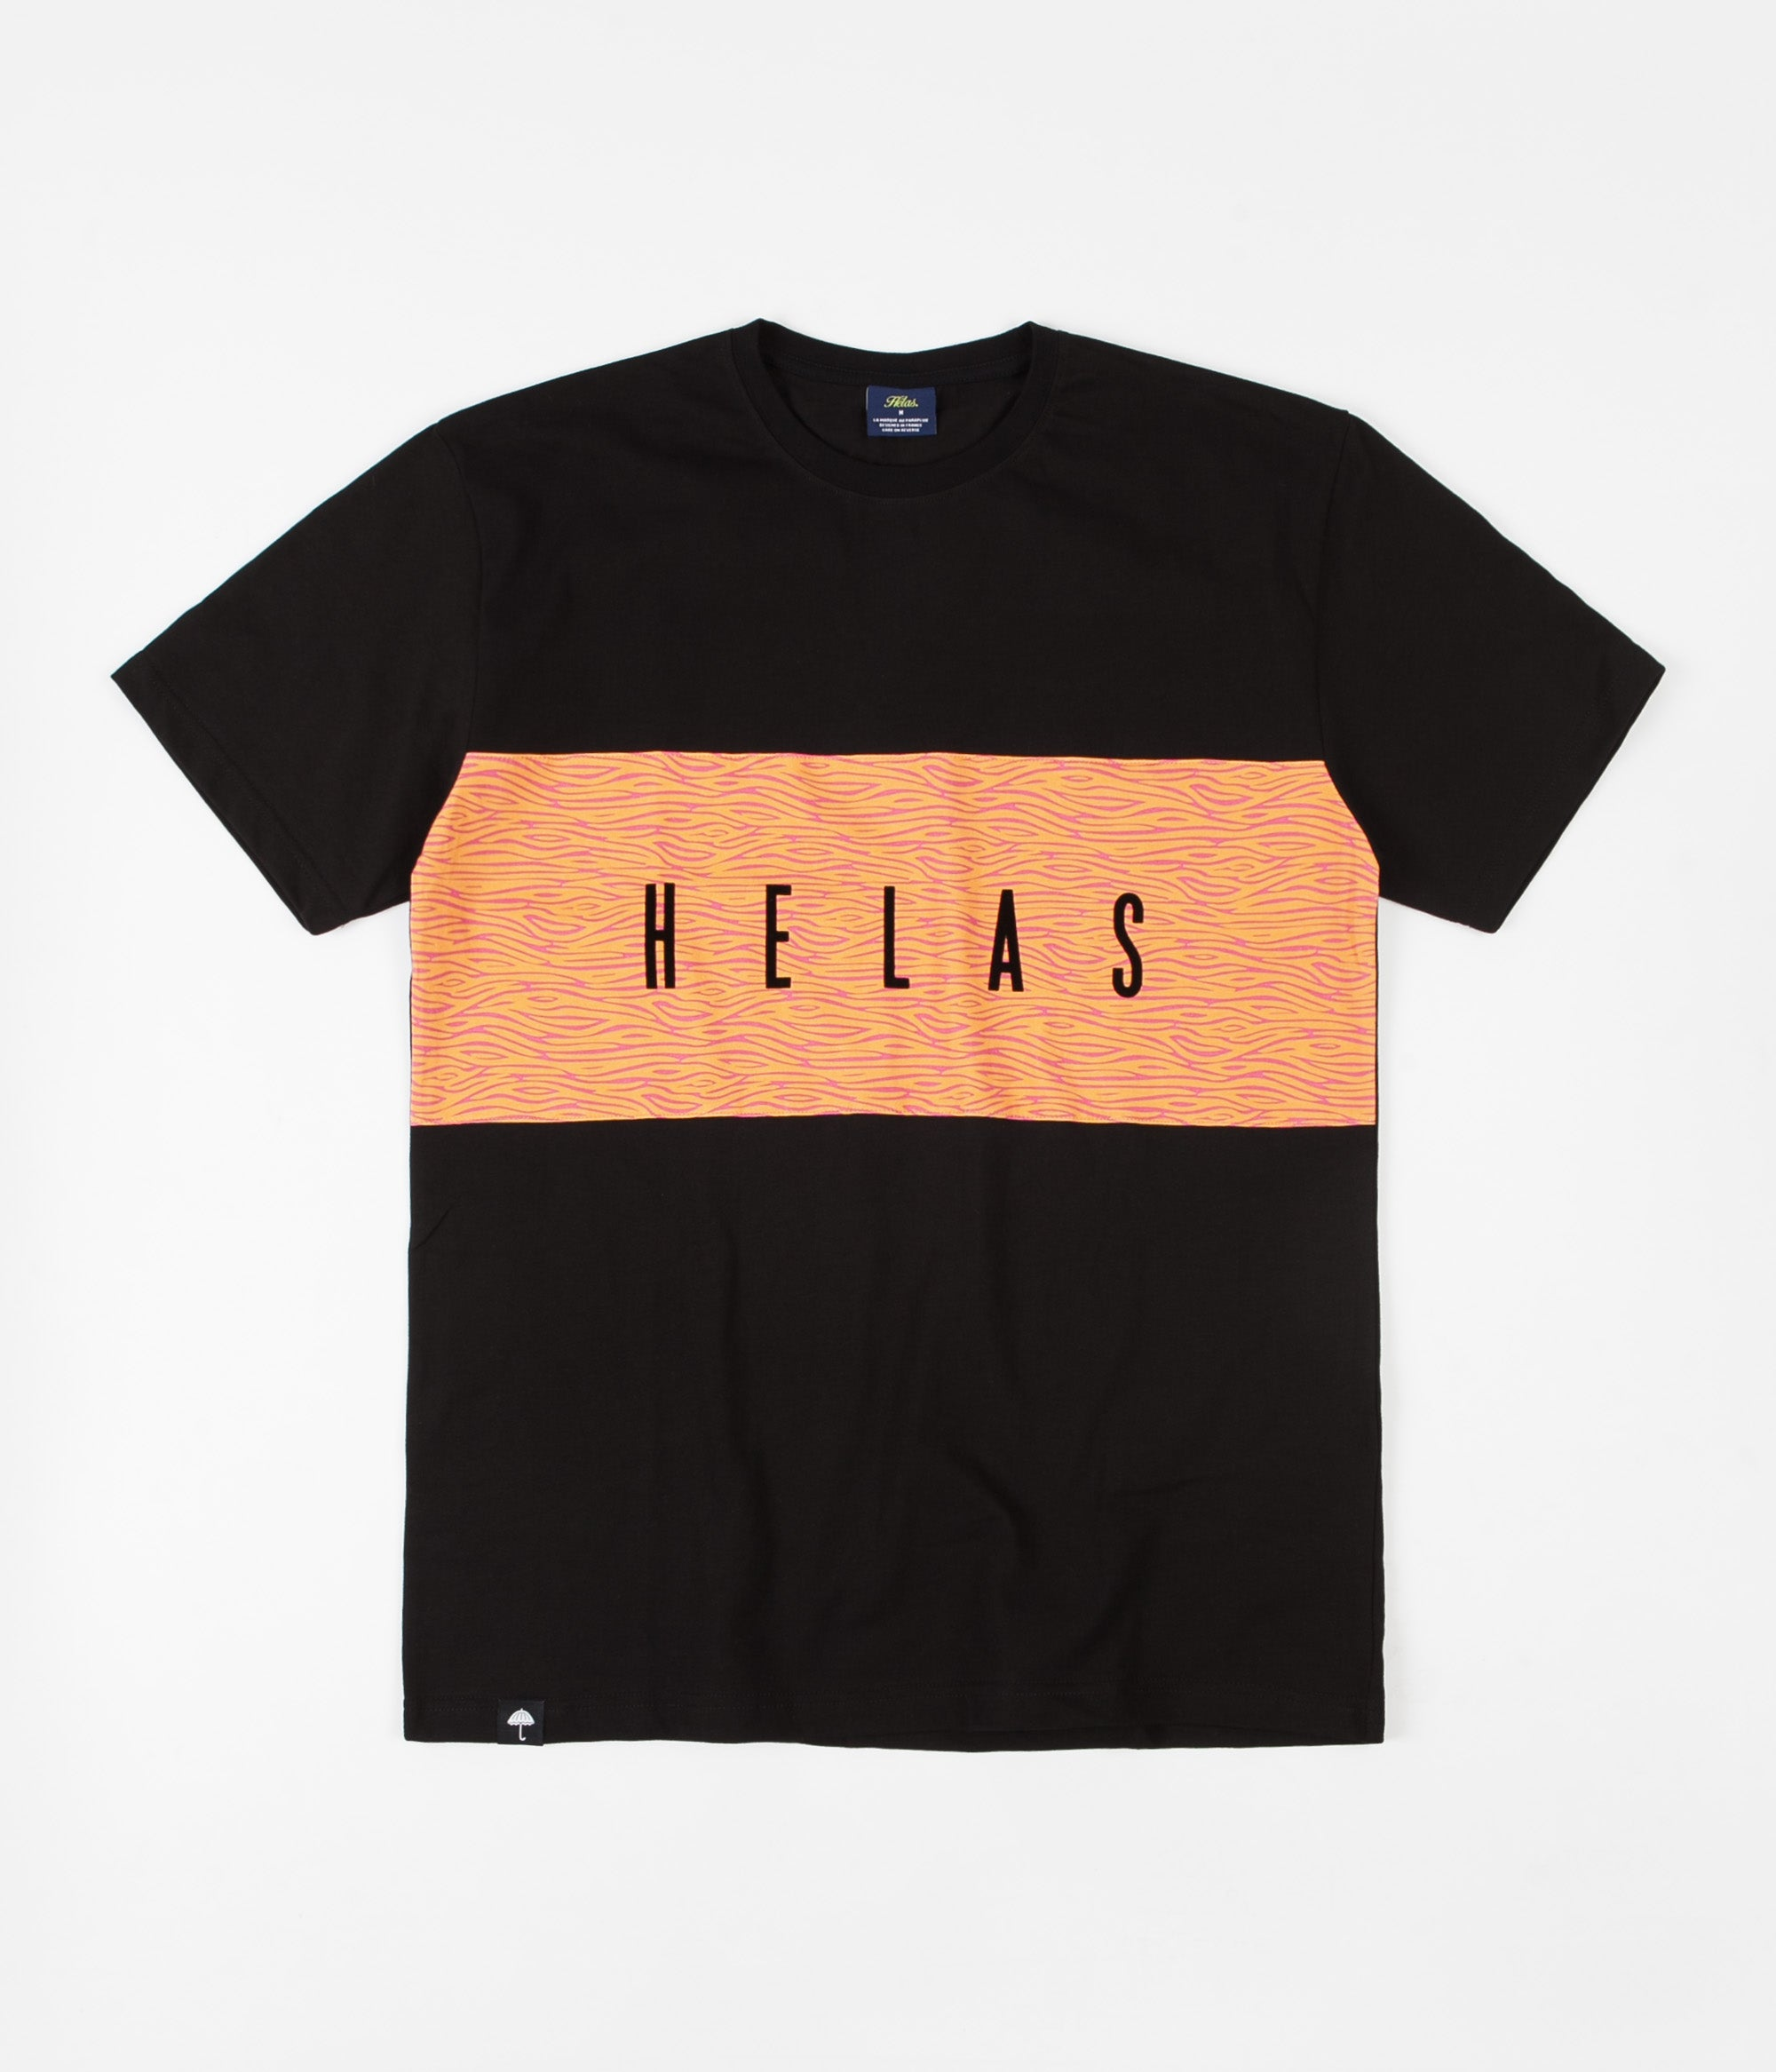 Helas Jungle T-Shirt - Black